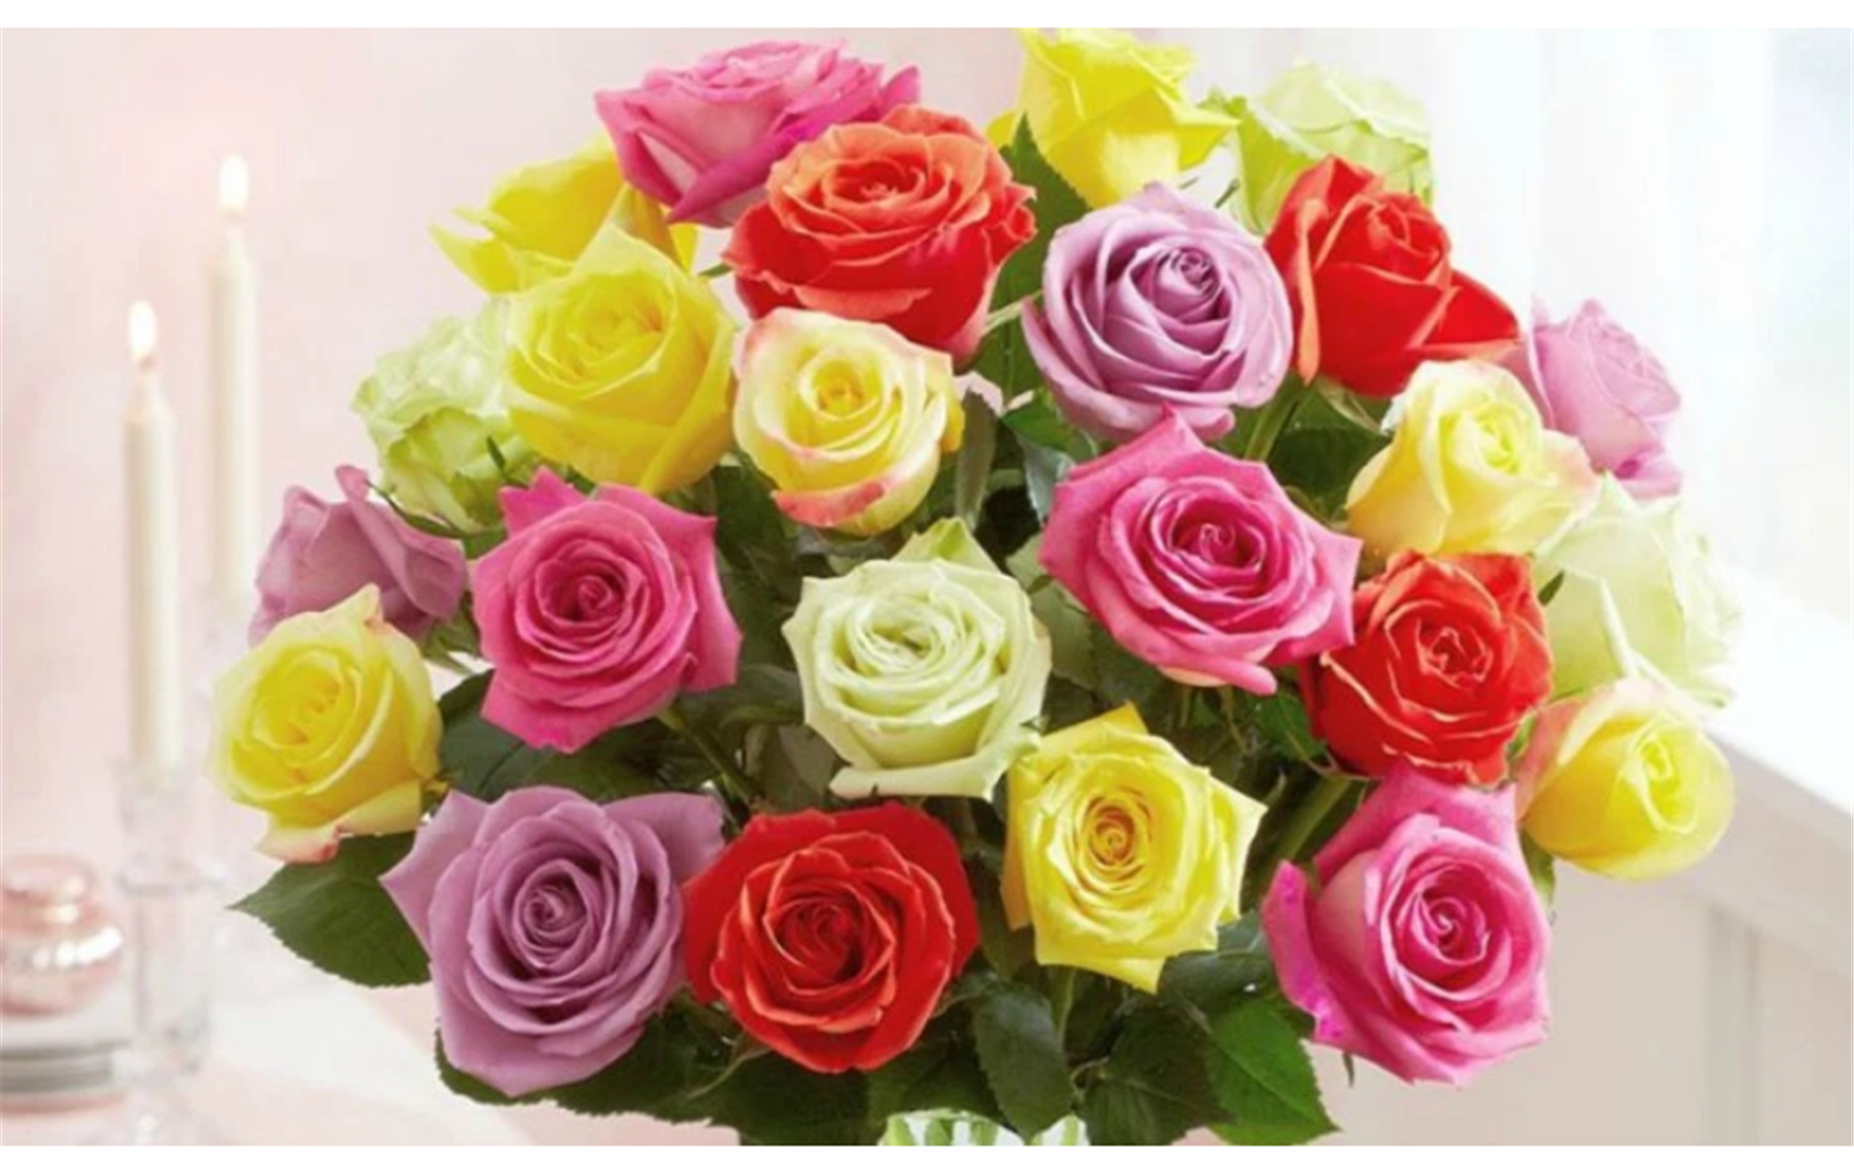 Two Dozen Assorted Roses Only $29.99 Delivered! GREAT VALENTINE'S DAY GIFT!!